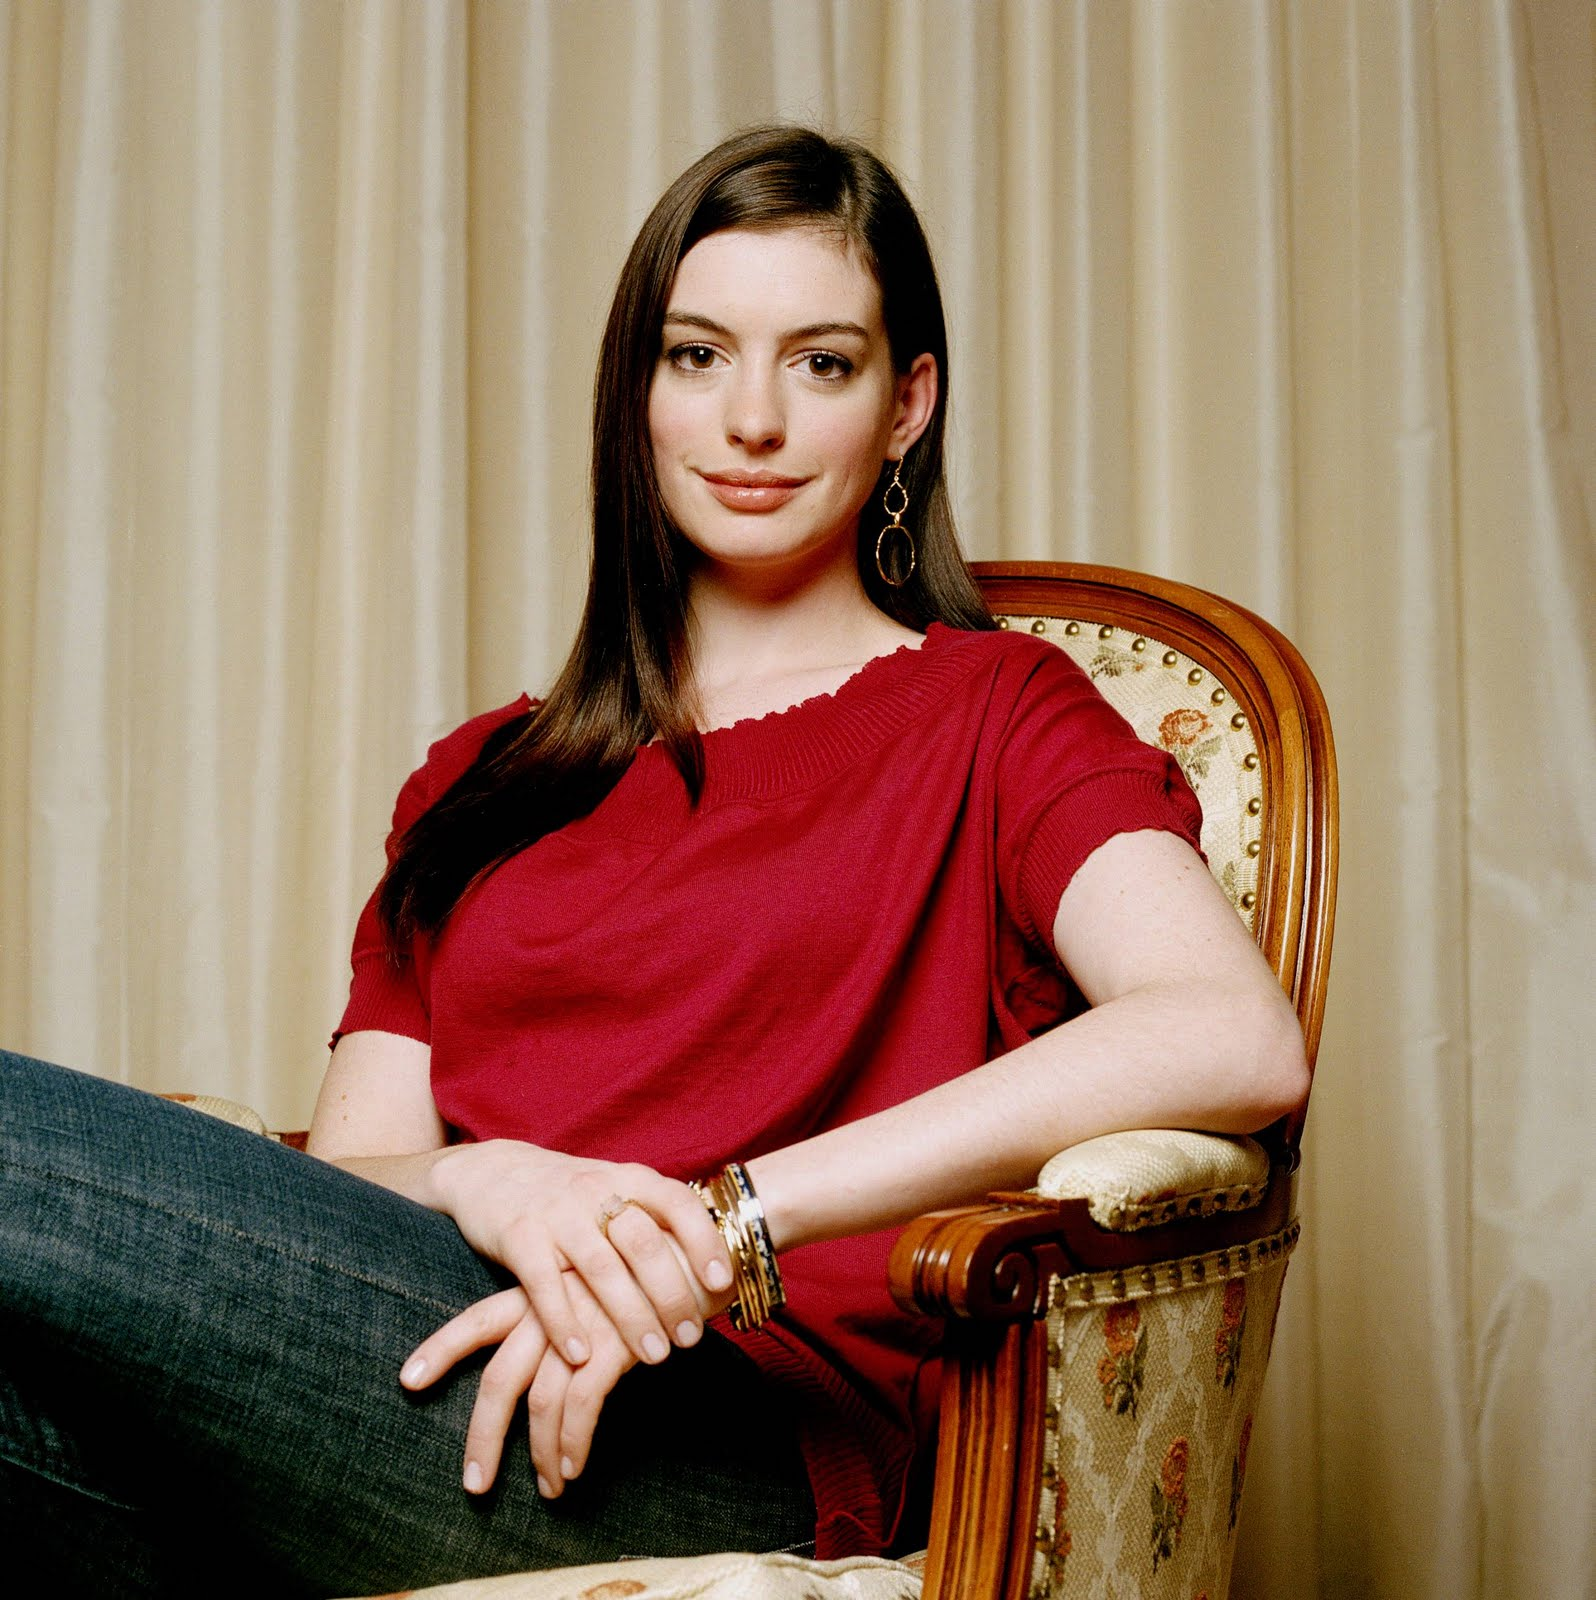 File:Anne Hathaway Red Shirt And Jeans.jpg